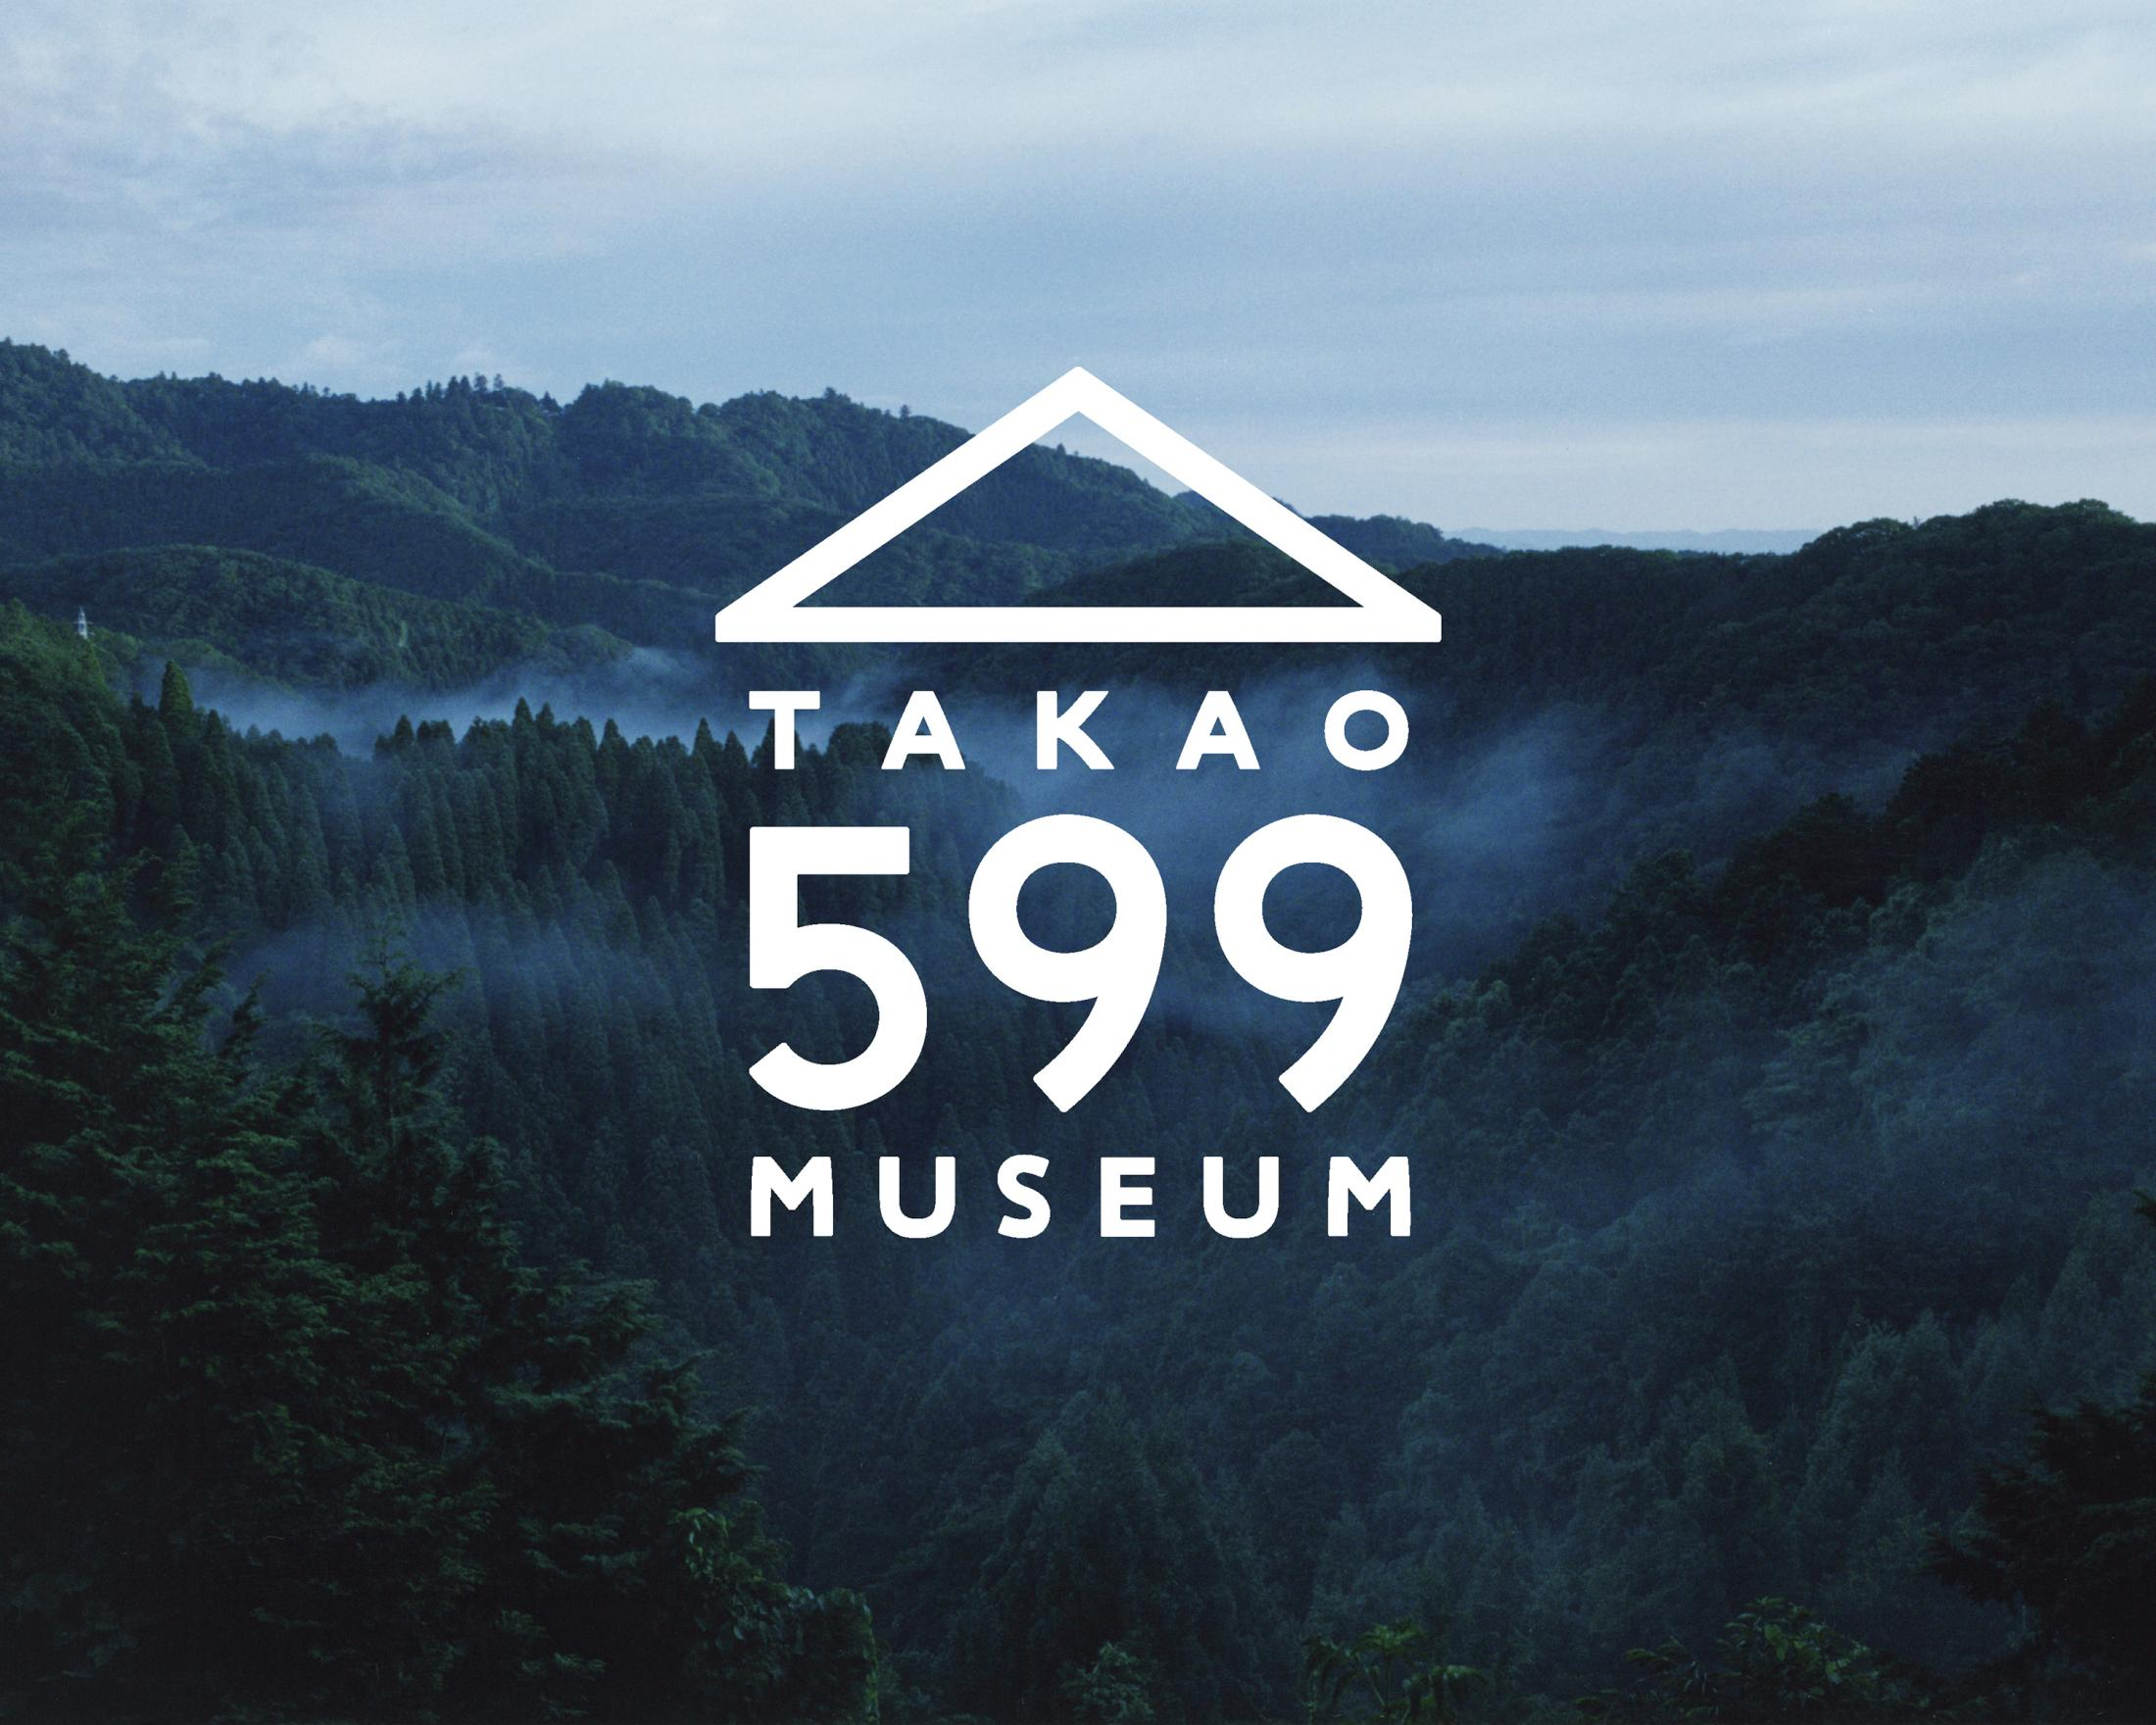 Thumbnail for TAKAO 599 MUSEUM